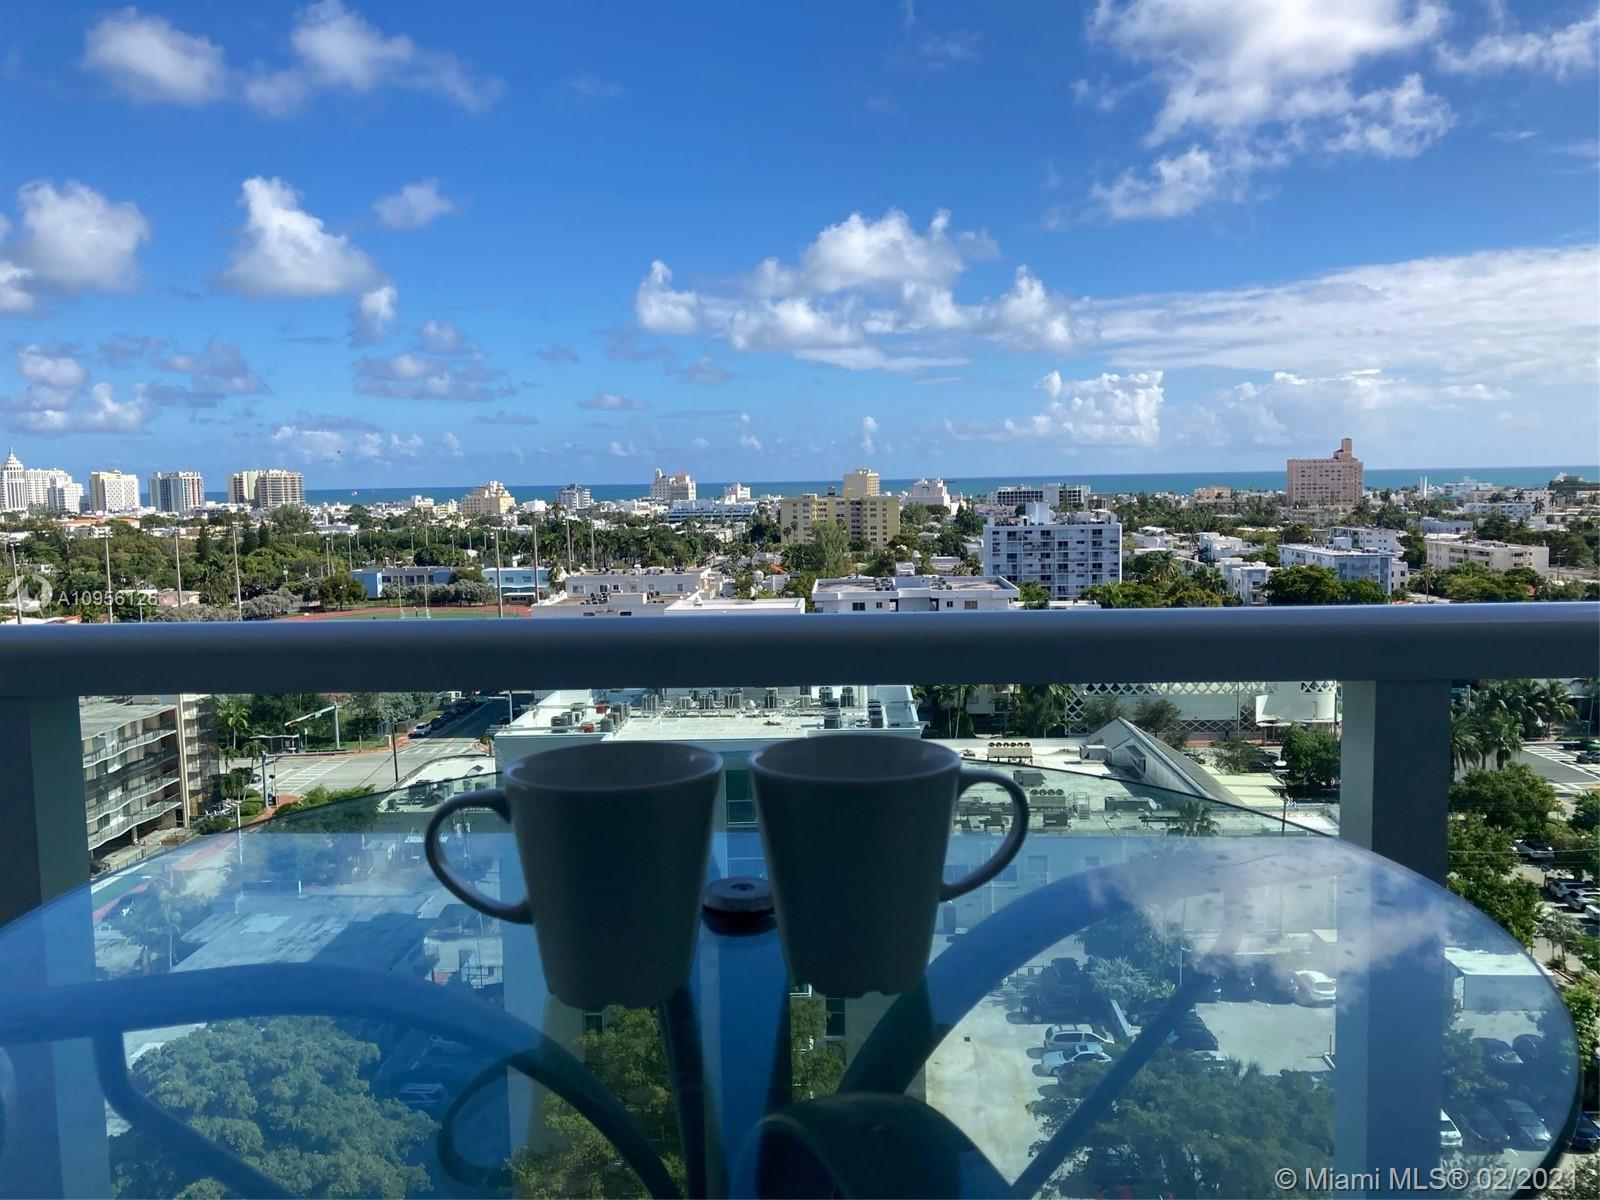 $30K OFF!! Renovated 1BR High Floor condo overlooking Miami Beach. Awesome amenities including a lar